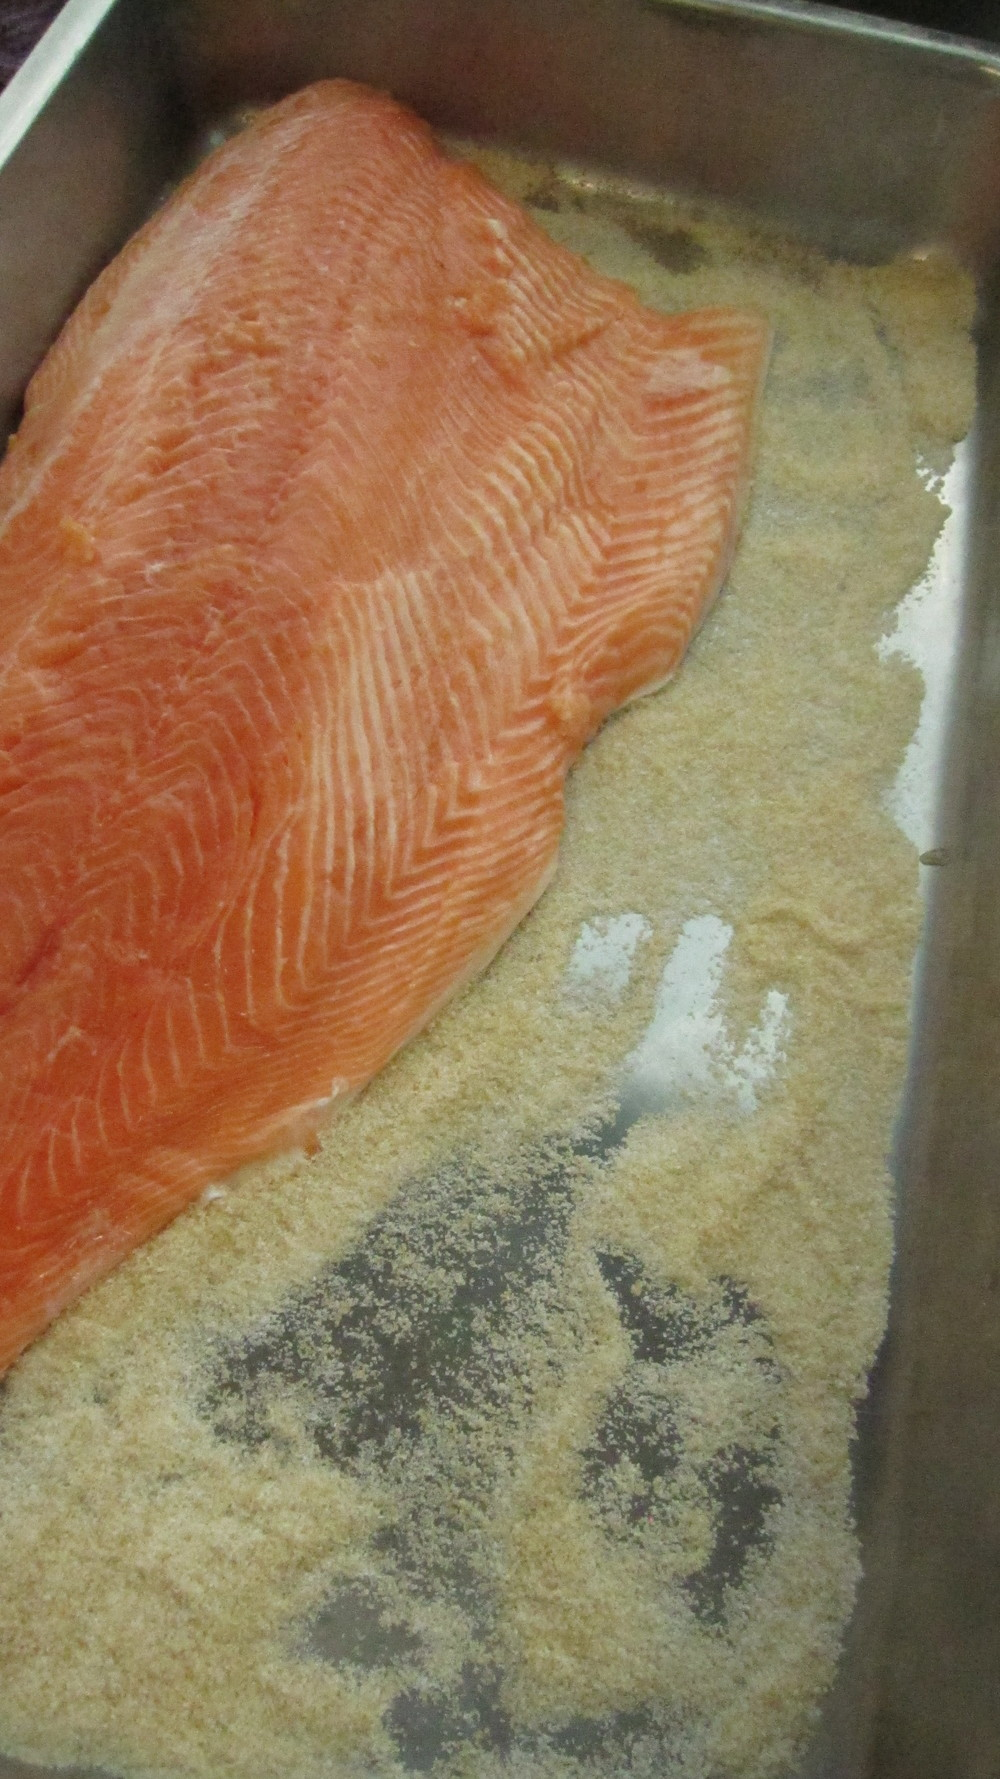 Salmon fillets are placed on top of an even layer of cure